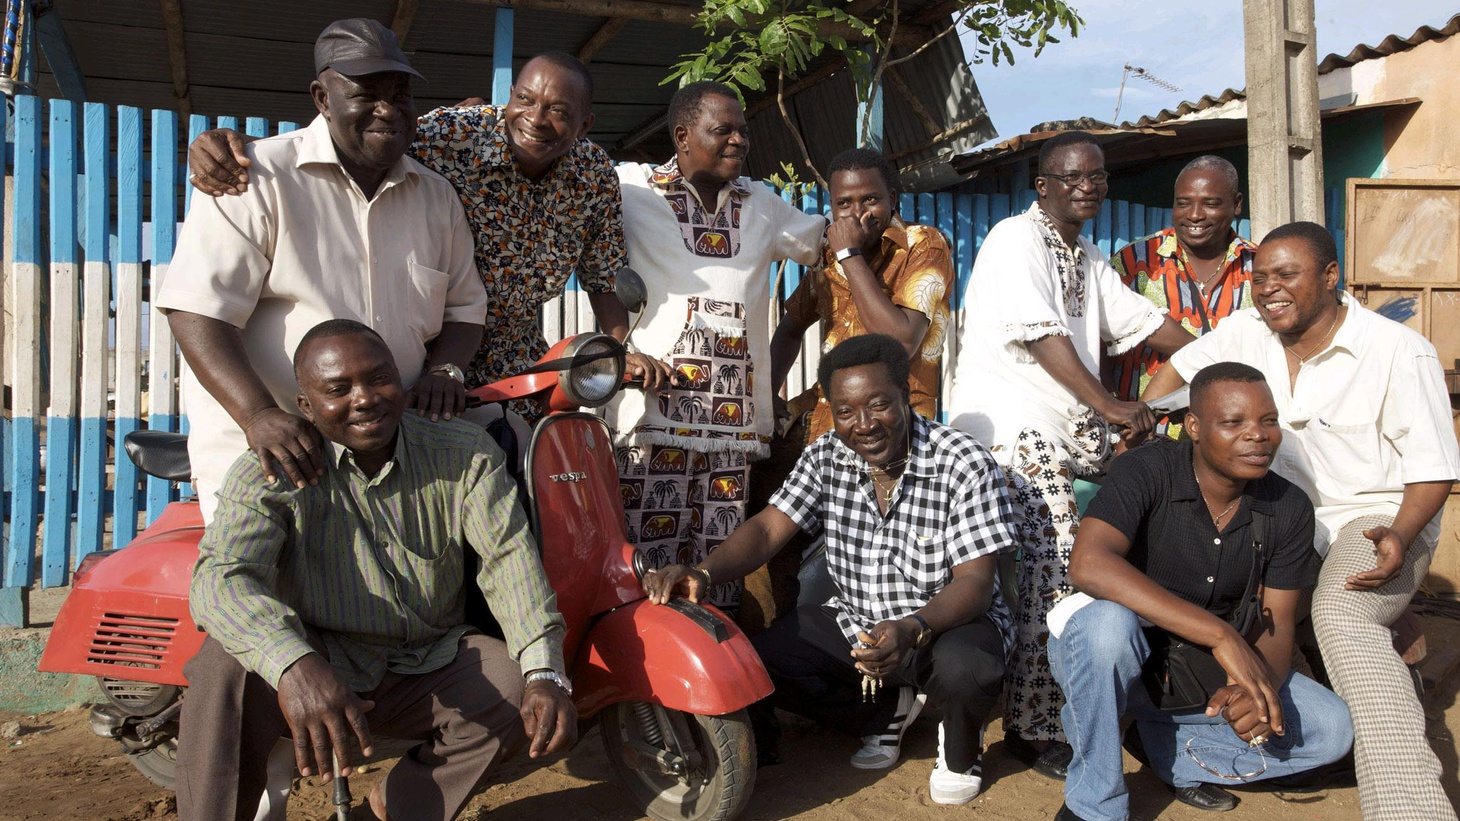 Orchestre Poly-Rythmo's groundbreaking fusion of traditional high-life, Afrobeat, soul and funk make them a national institution in their native Benin...